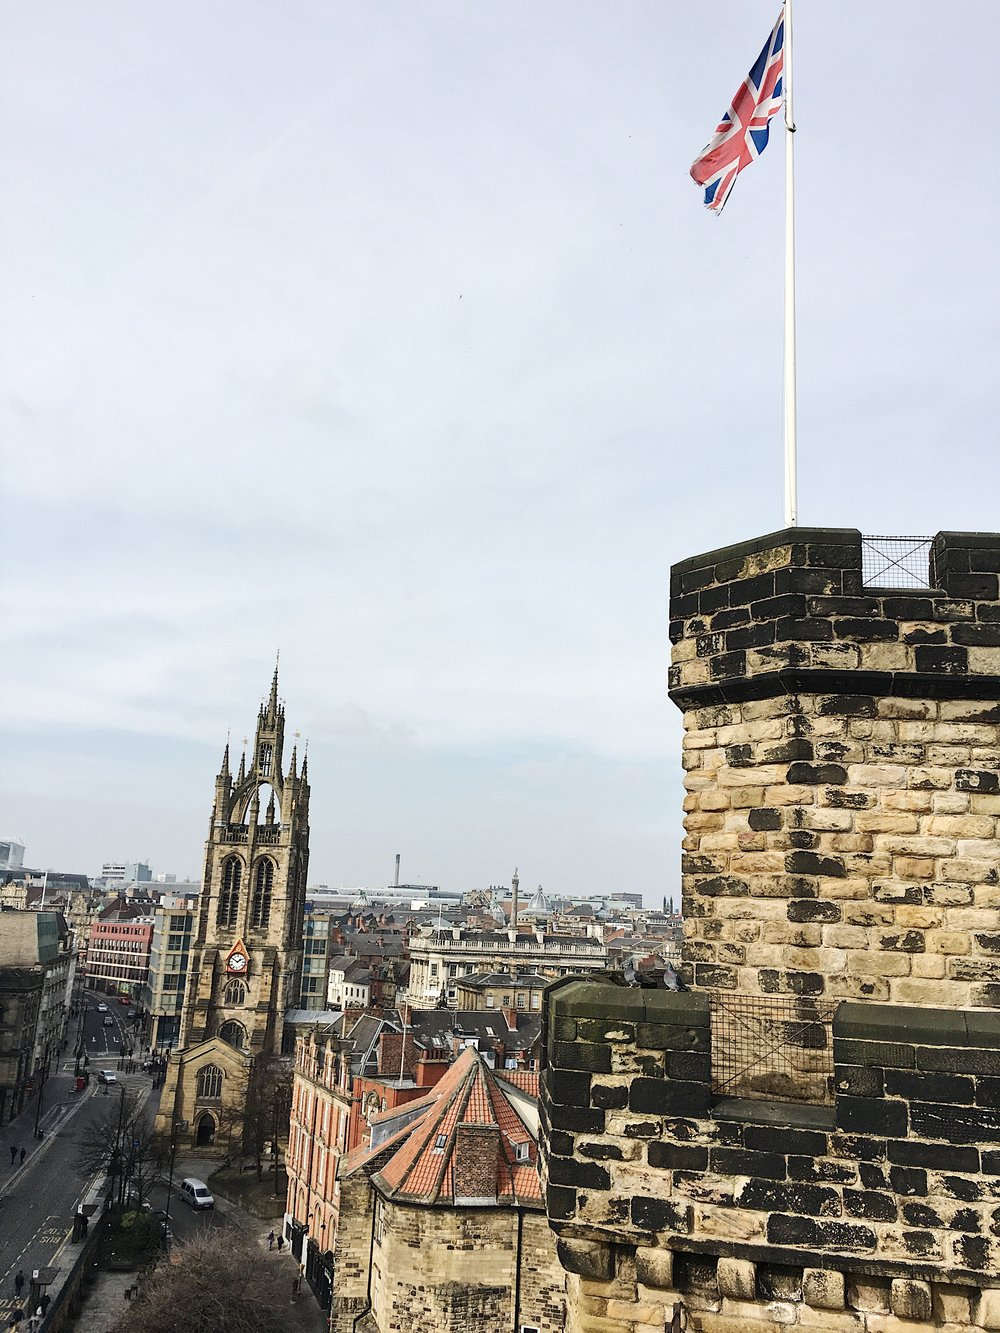 On top of Newcastle castle